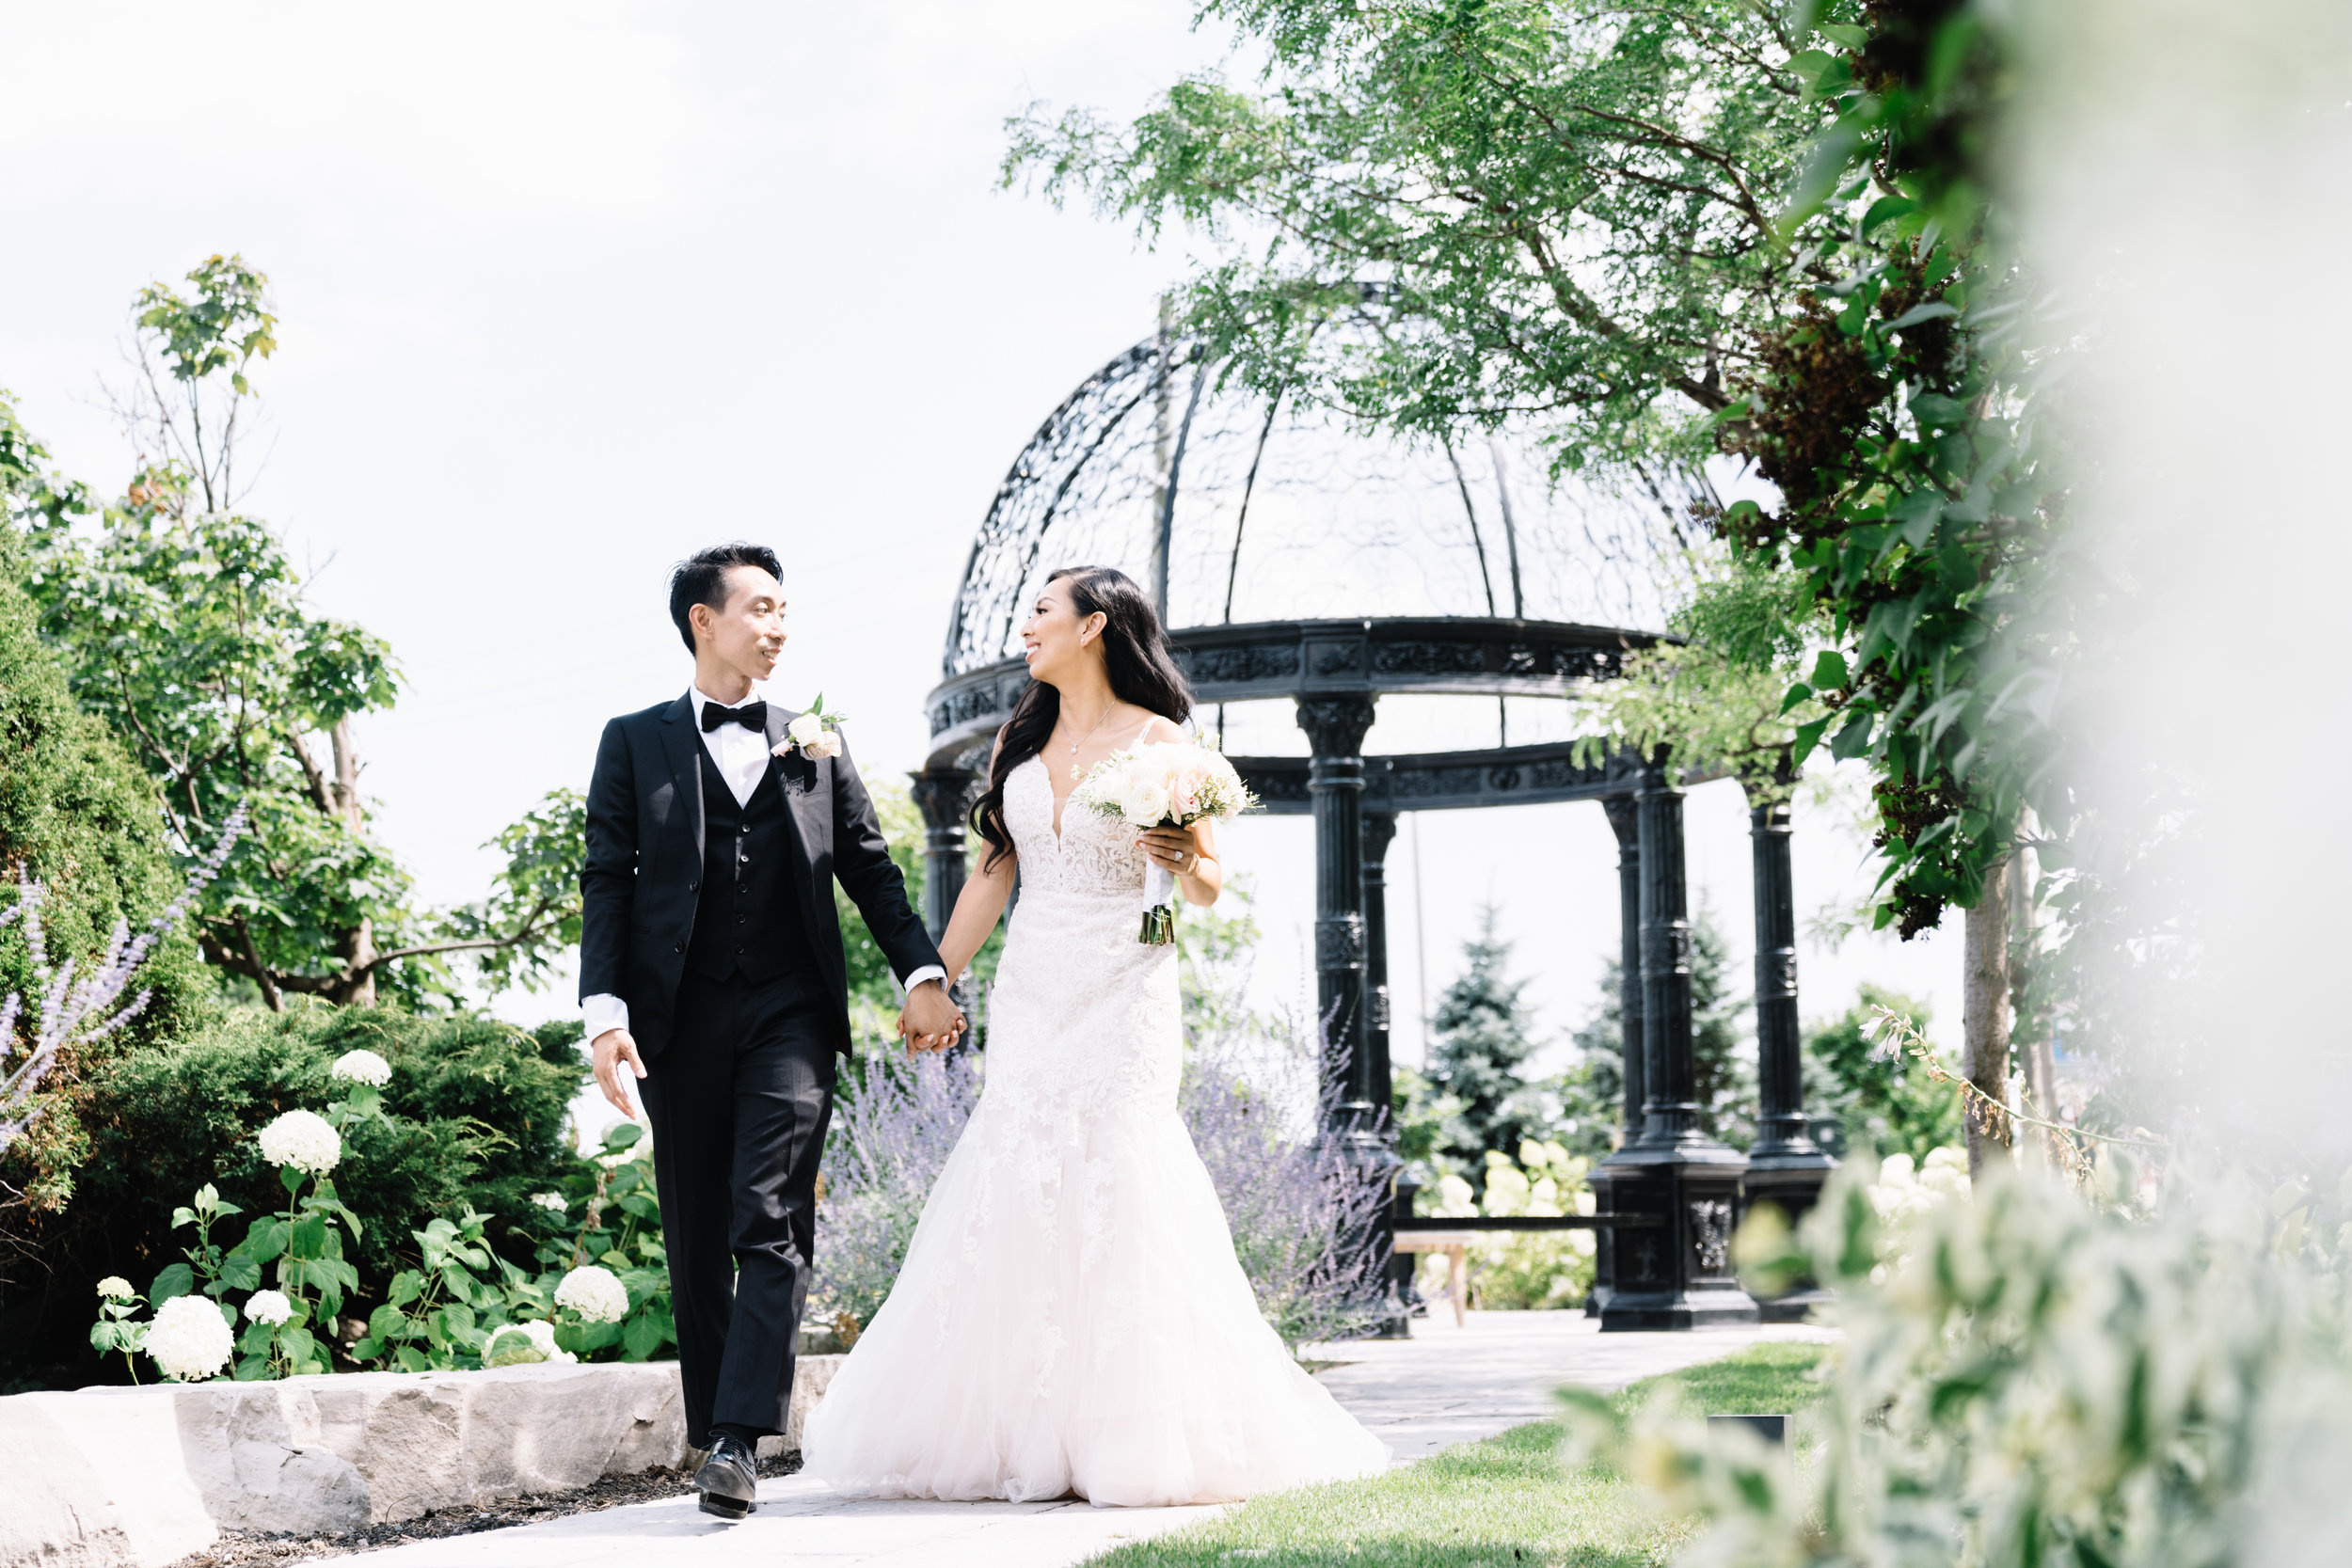 We had countless of compliments on the day of my wedding. They did a fantastic job with our makeup and hair, exactly the the style I requested. - Nancy, married August 3, 2019.★ ★ ★ ★ ★